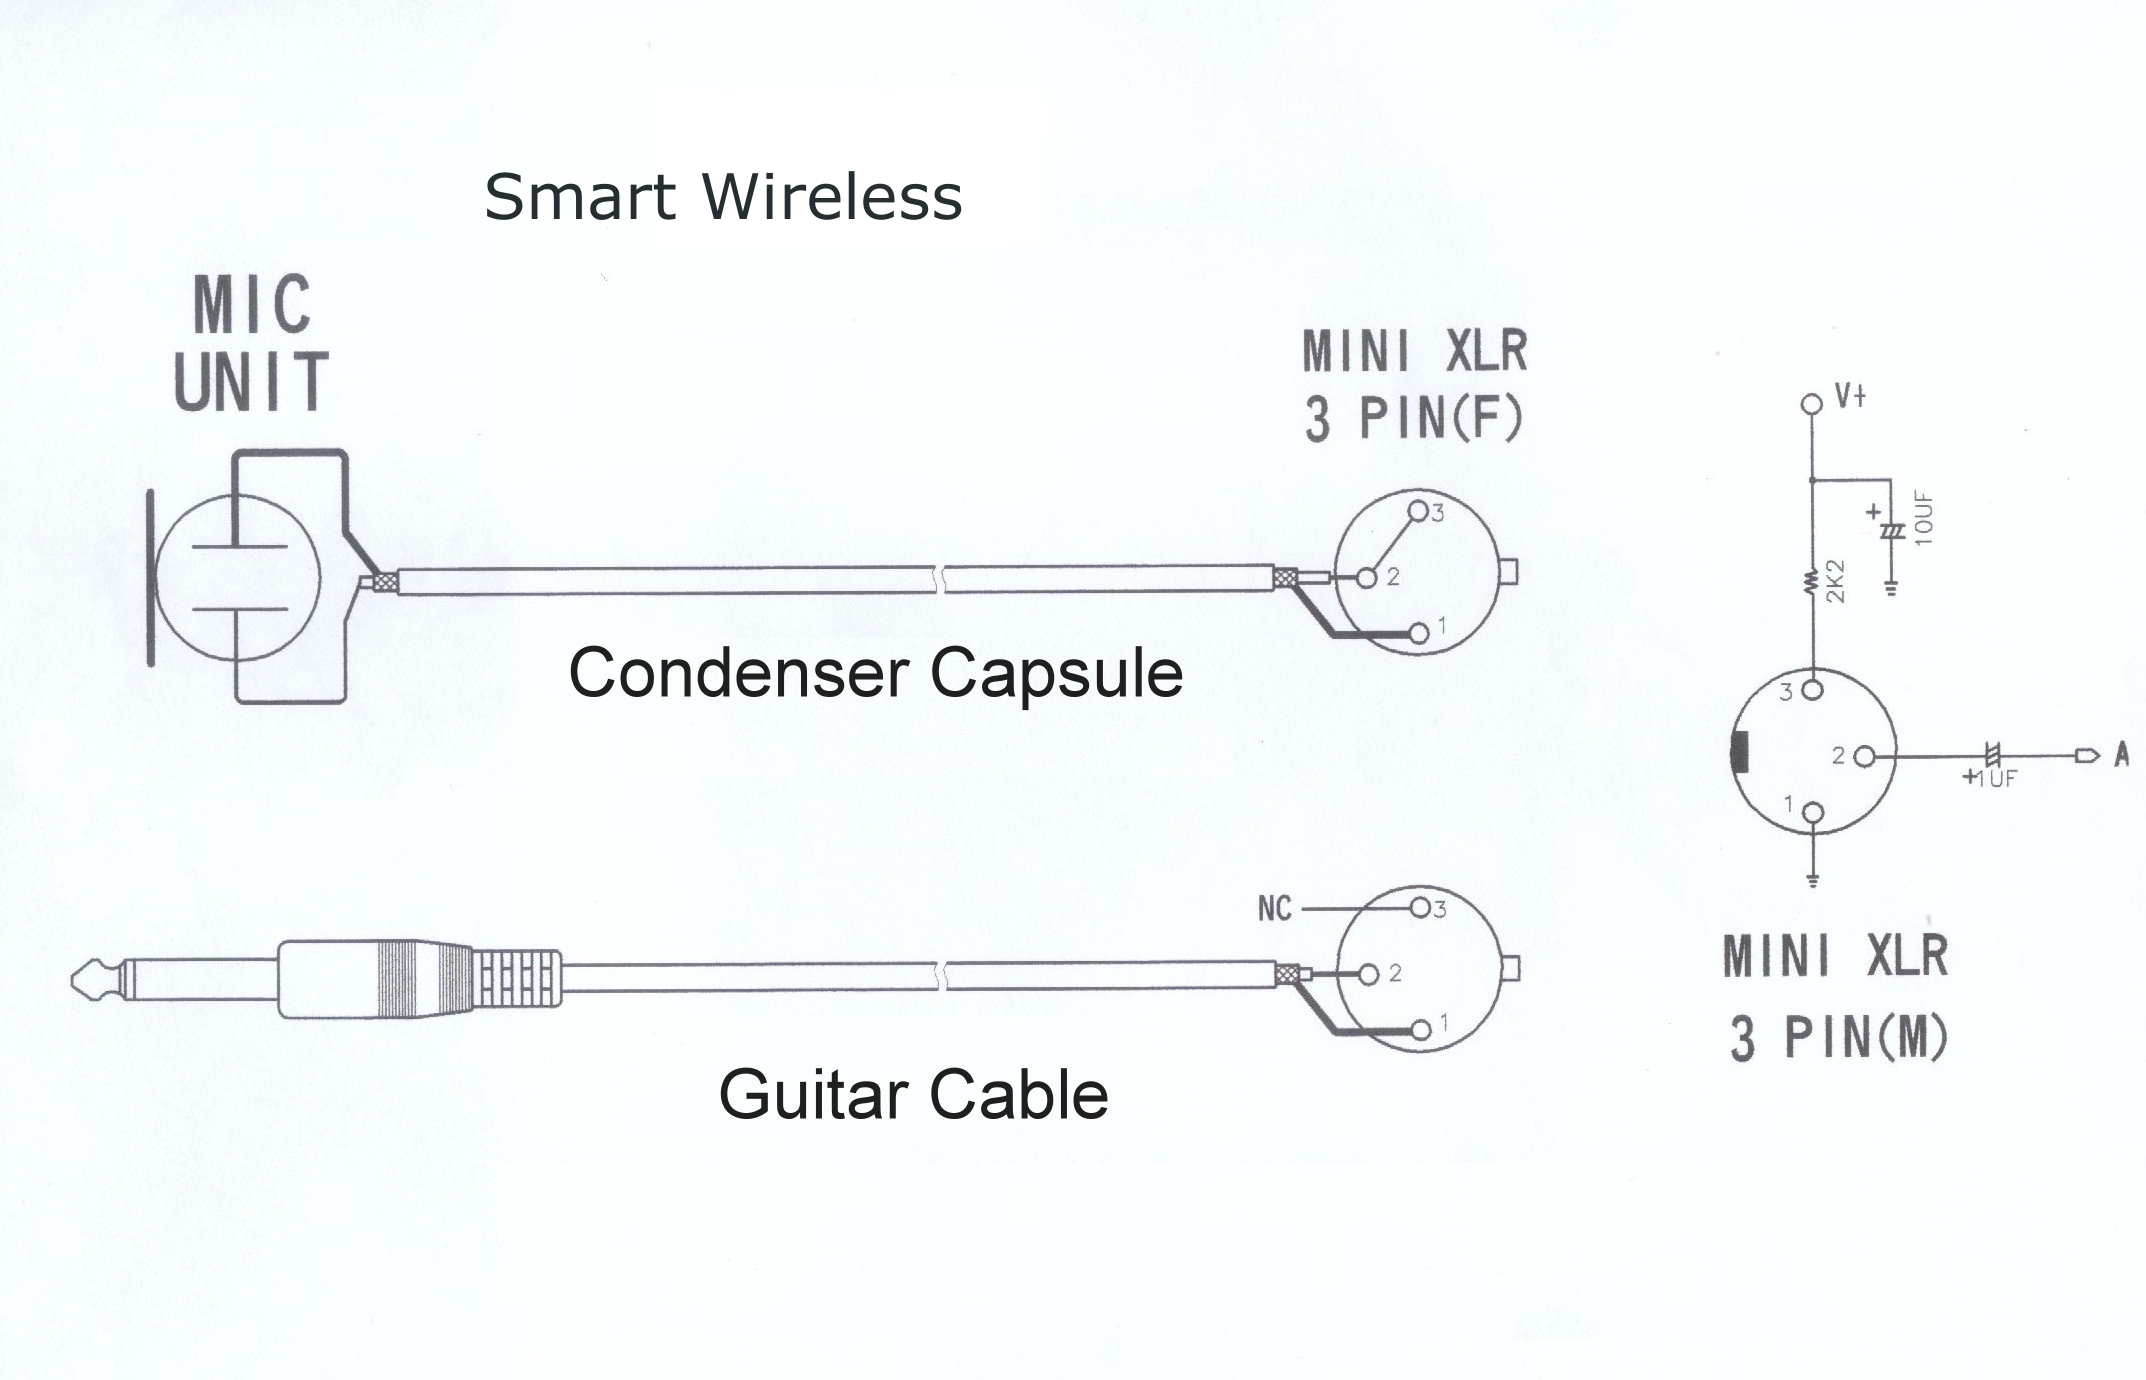 XLR Balanced Phone Unbalanced xlr balanced phone unbalanced jpg microphone cable wiring diagram at reclaimingppi.co